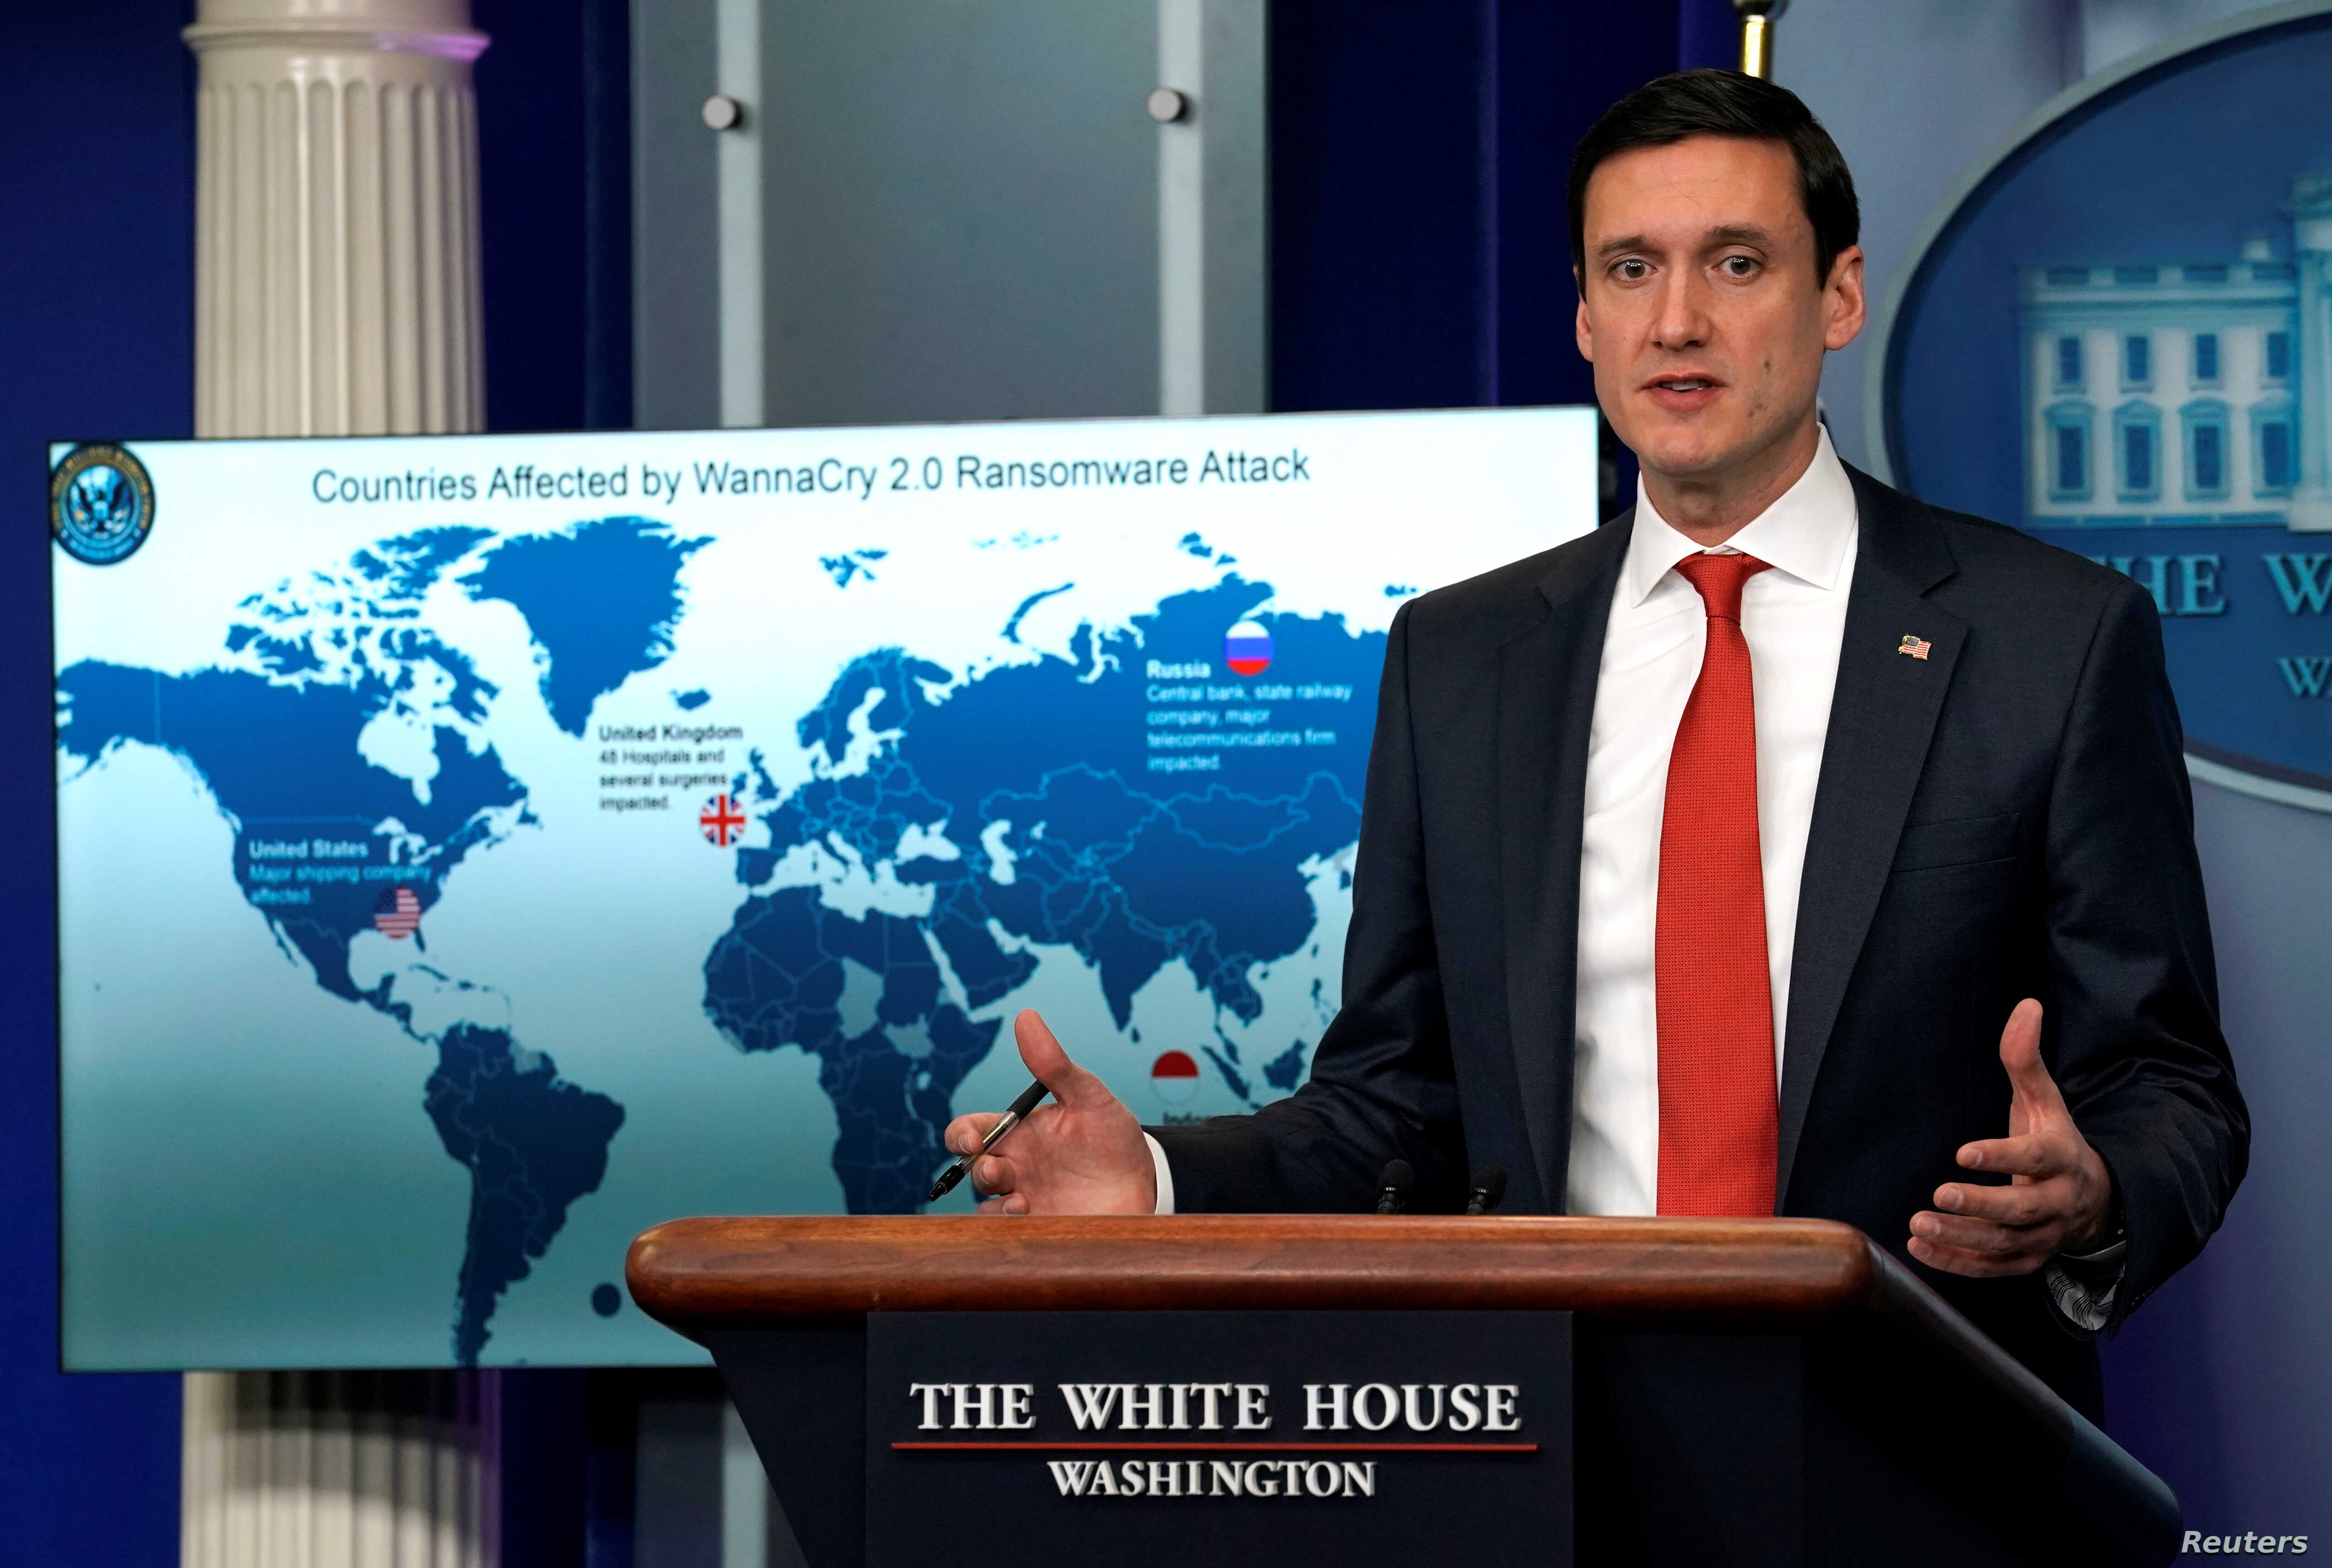 Tom Bossert, homeland security adviser to President Donald Trump, holds a press briefing to publicly blame North Korea for unleashing the so-called WannaCry cyber attack at the White House in Washington, Dec. 19, 2017.